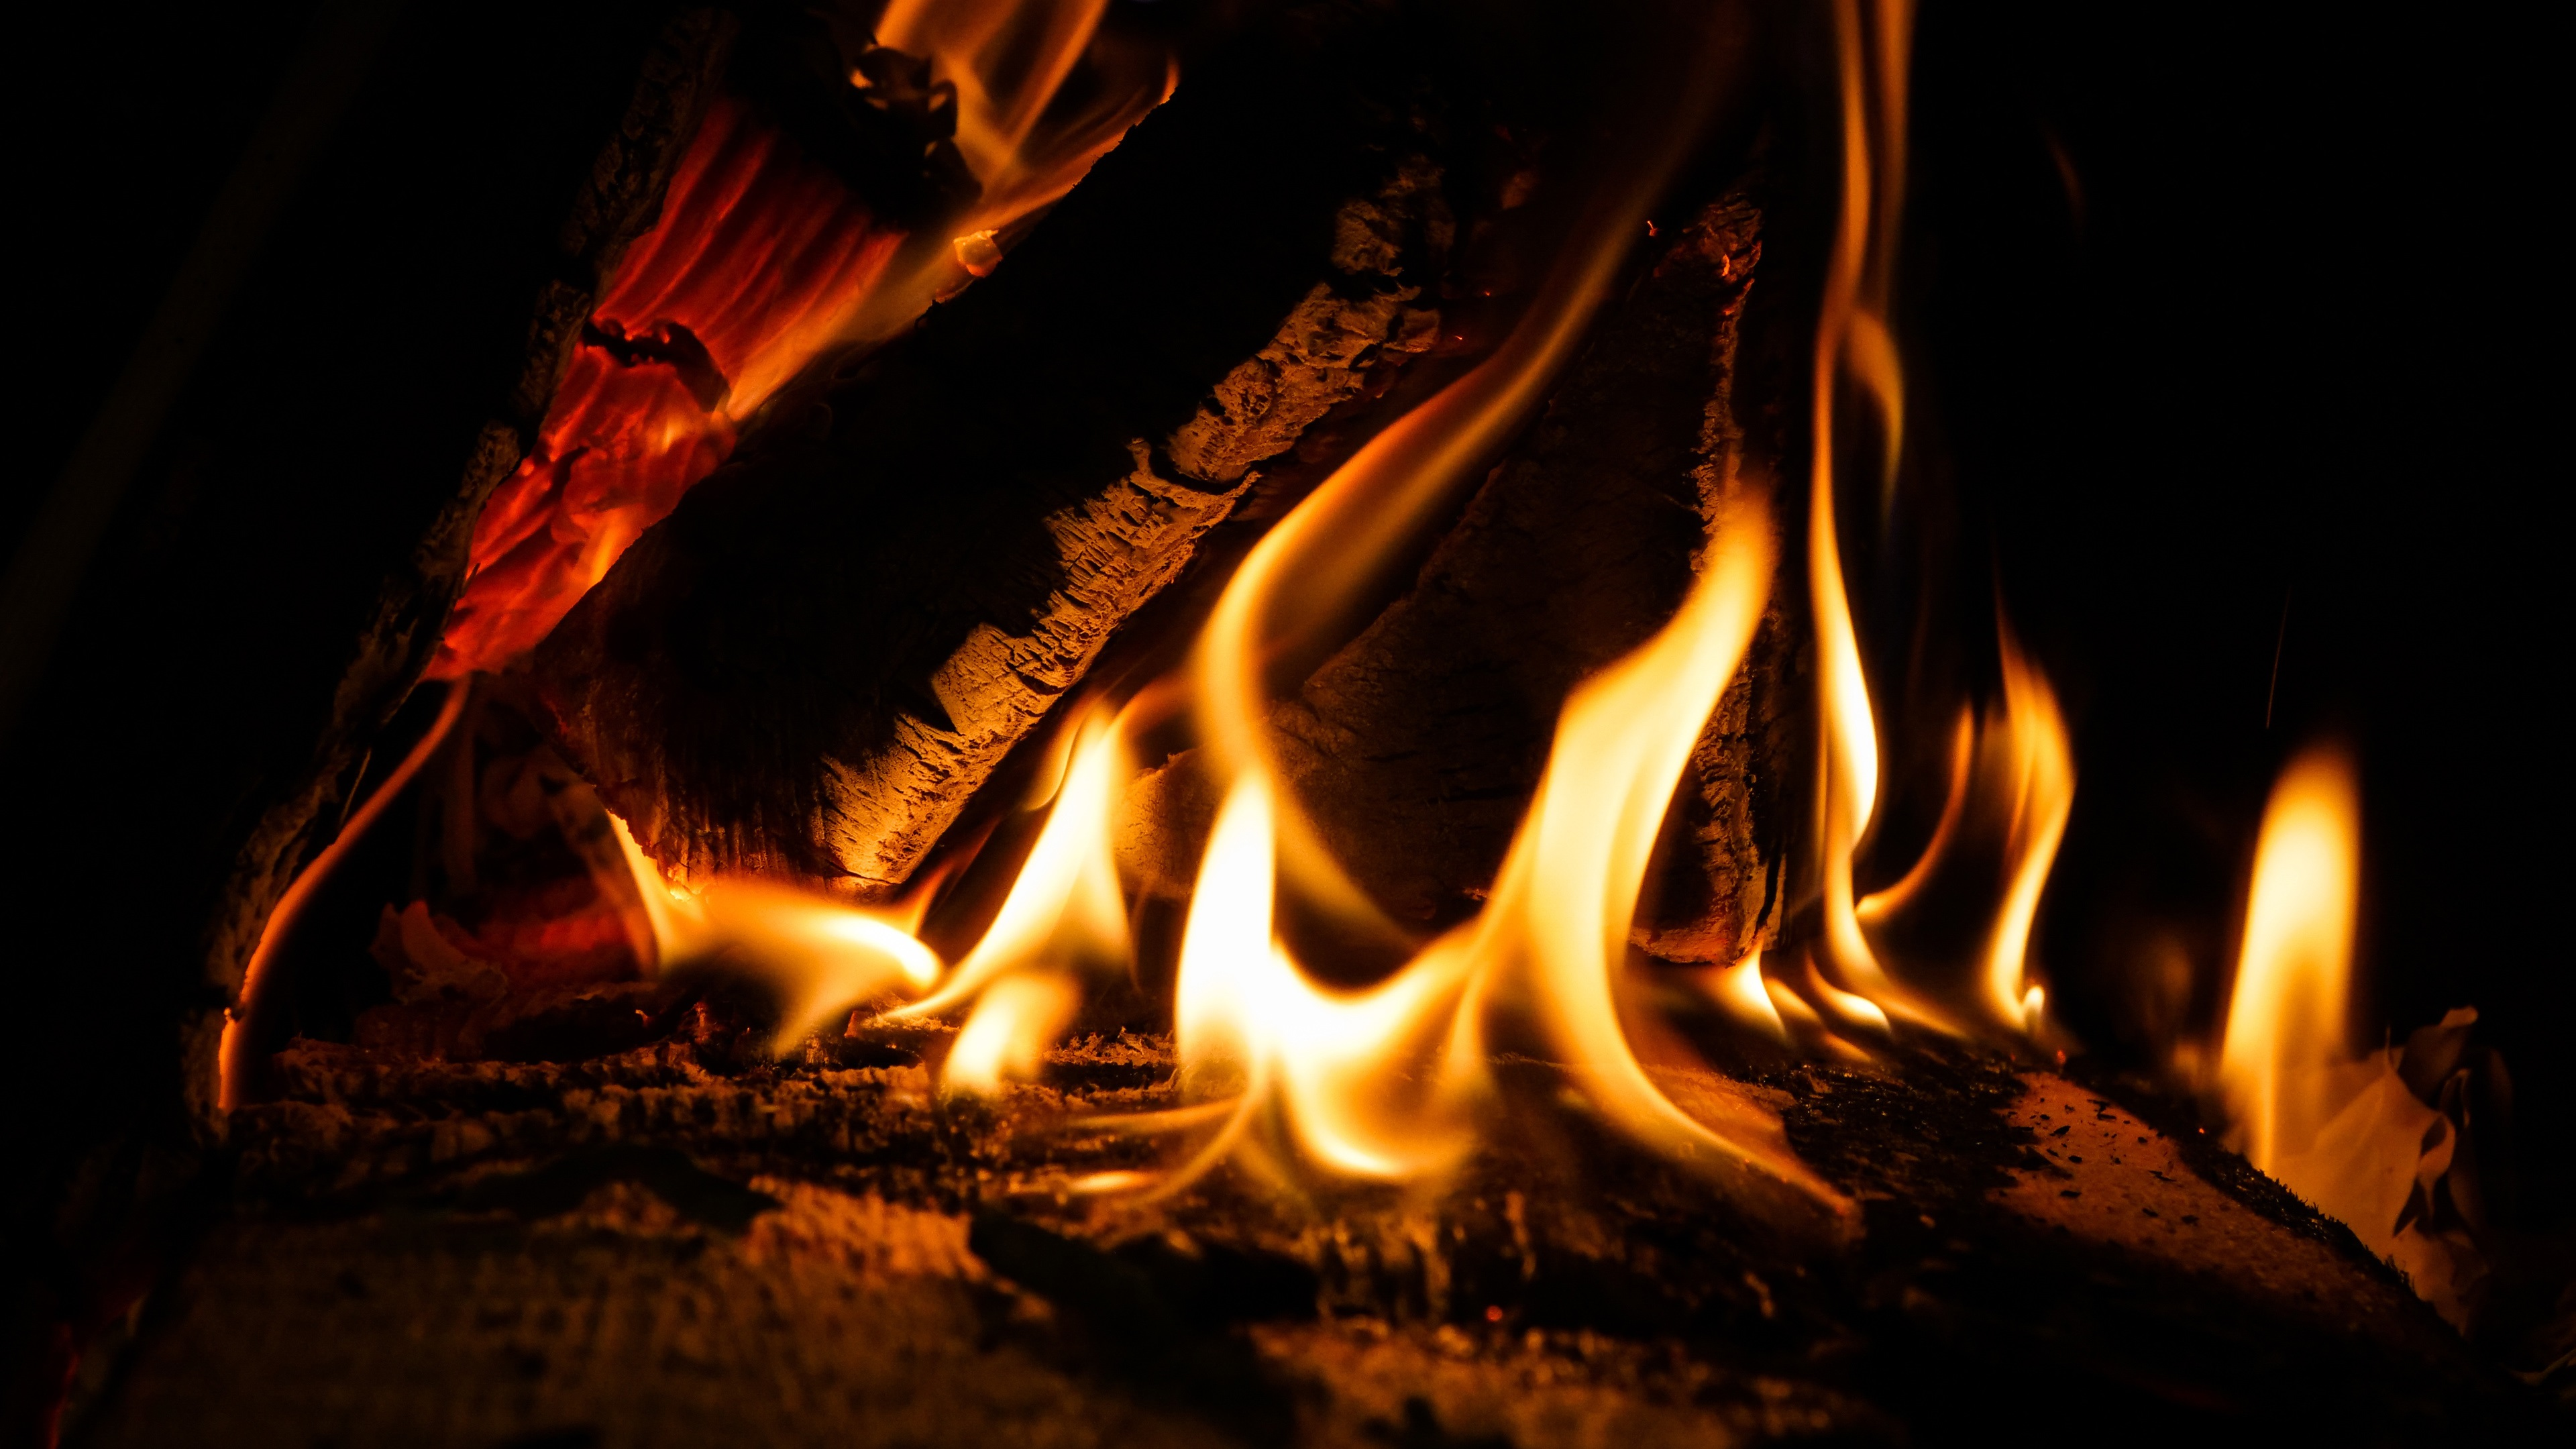 Wallpaper Flame Fire Darkness 3840x2160 Uhd 4k Picture Image